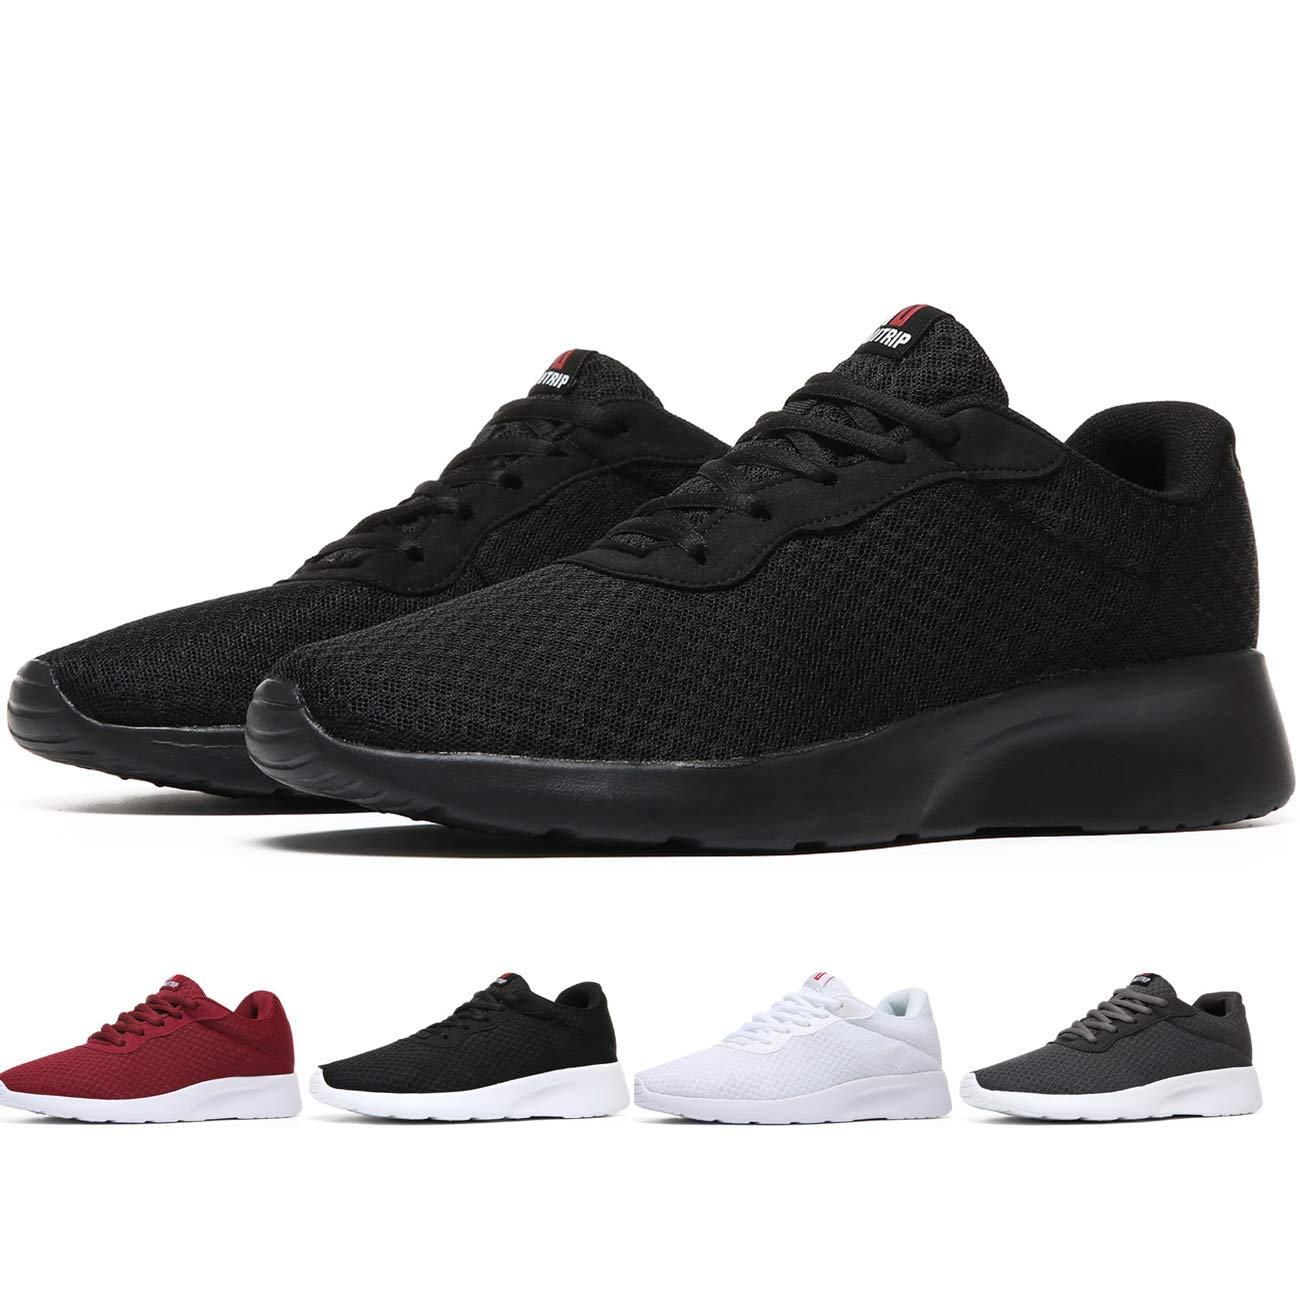 MAlITRIP All Black Athletic Shoes Men Casual Cool Light Comfort Fashion Walking Running Training Workout Sneakers Gifts for Father's Day Young Mens Size 11 by MAlITRIP